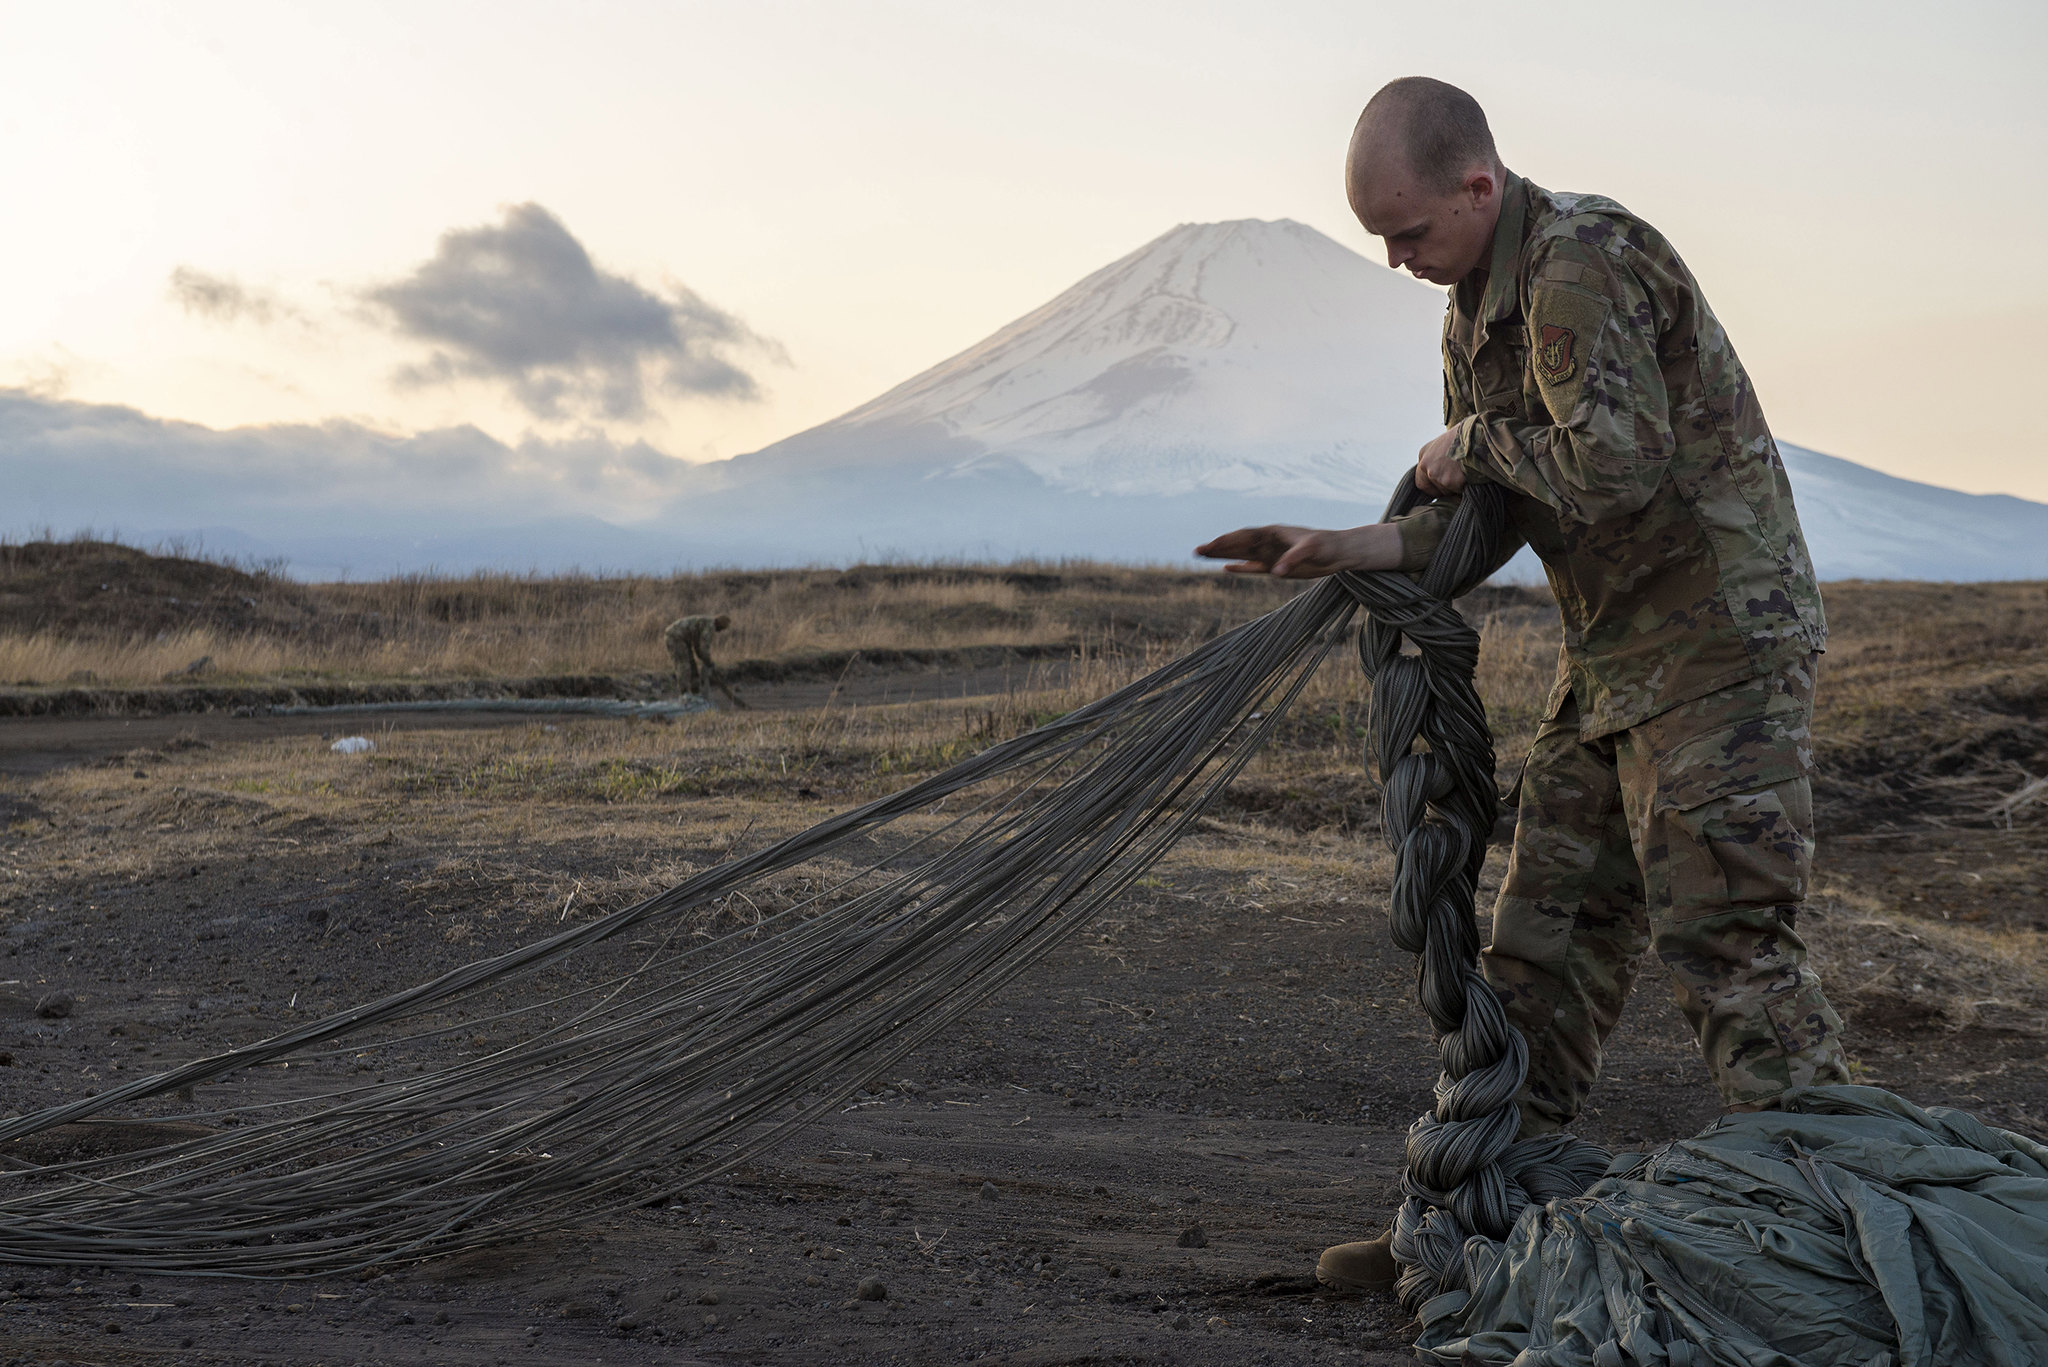 Staff Sgt. Nicholas Adkins folds parachute suspension lines on March 25, 2020, before stowing the parachute inside a recovery bag at the Combined Arms Training Center, Camp Fuji, Japan. (Senior Airman Gabrielle Spalding/Air Force)